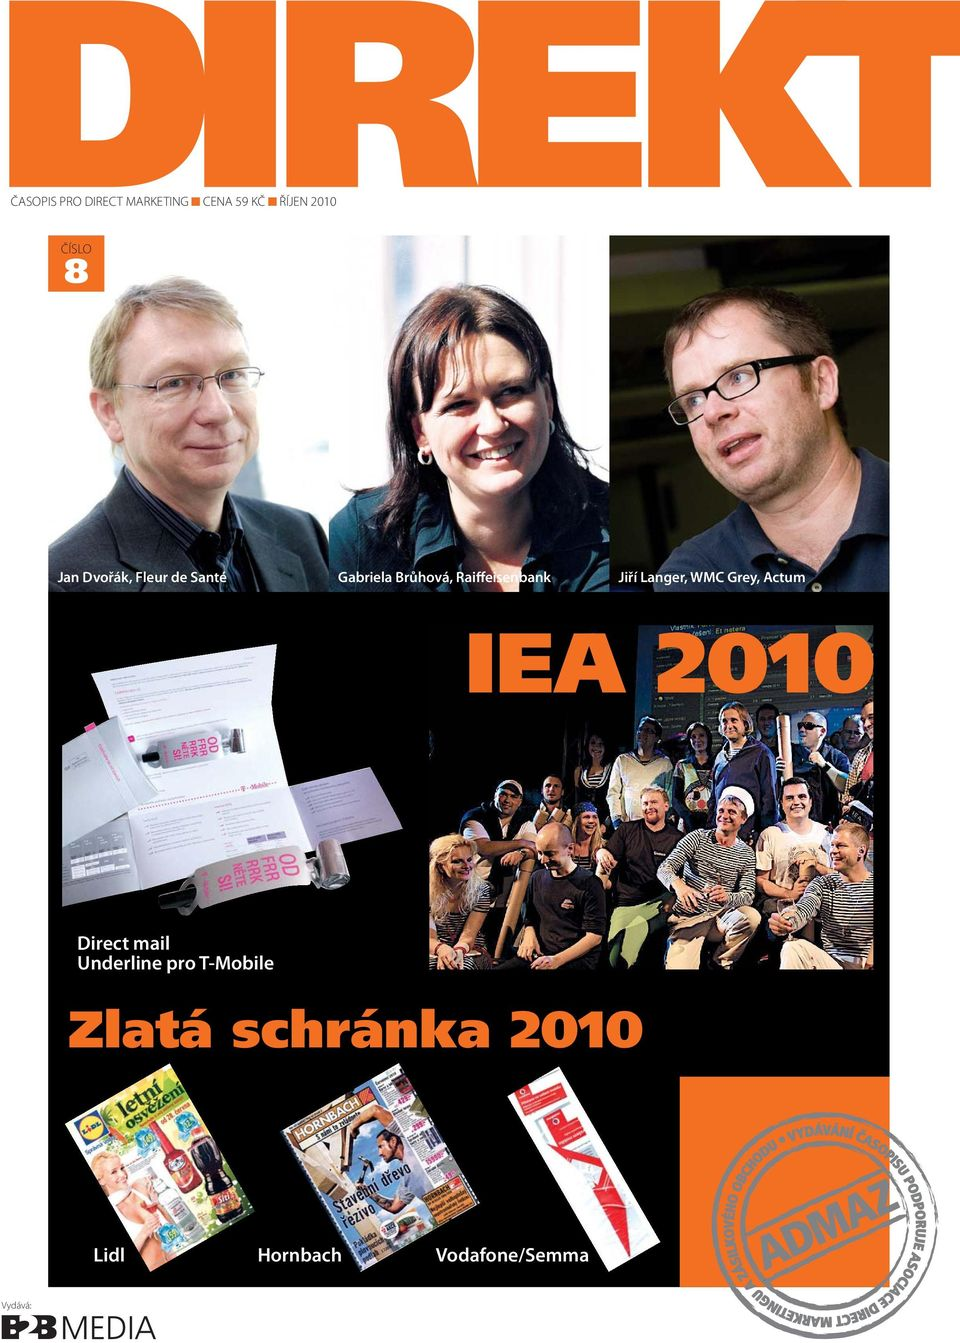 Jiří Langer, WMC Grey, Actum IEA 2010 Direct mail Underline